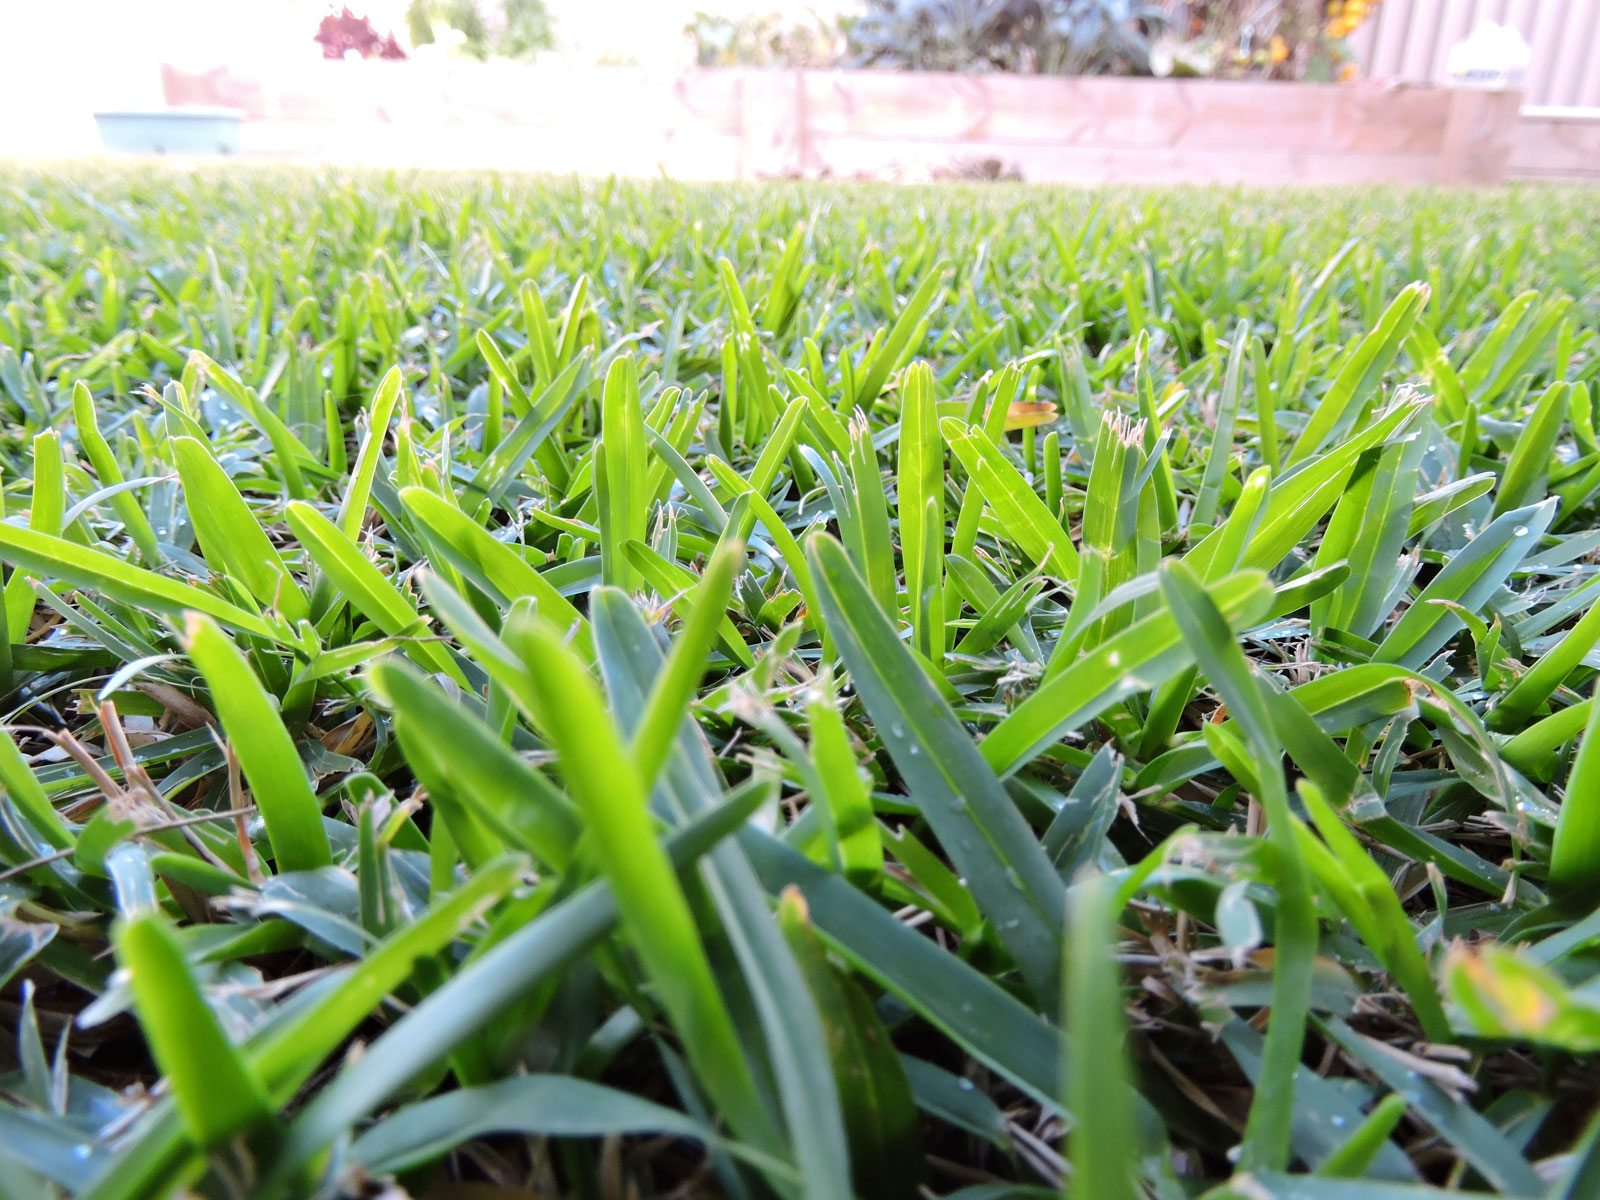 Drought tolerant grass varieties what are some types of drought resistant grass for lawns - Drought tolerant grass varieties ...